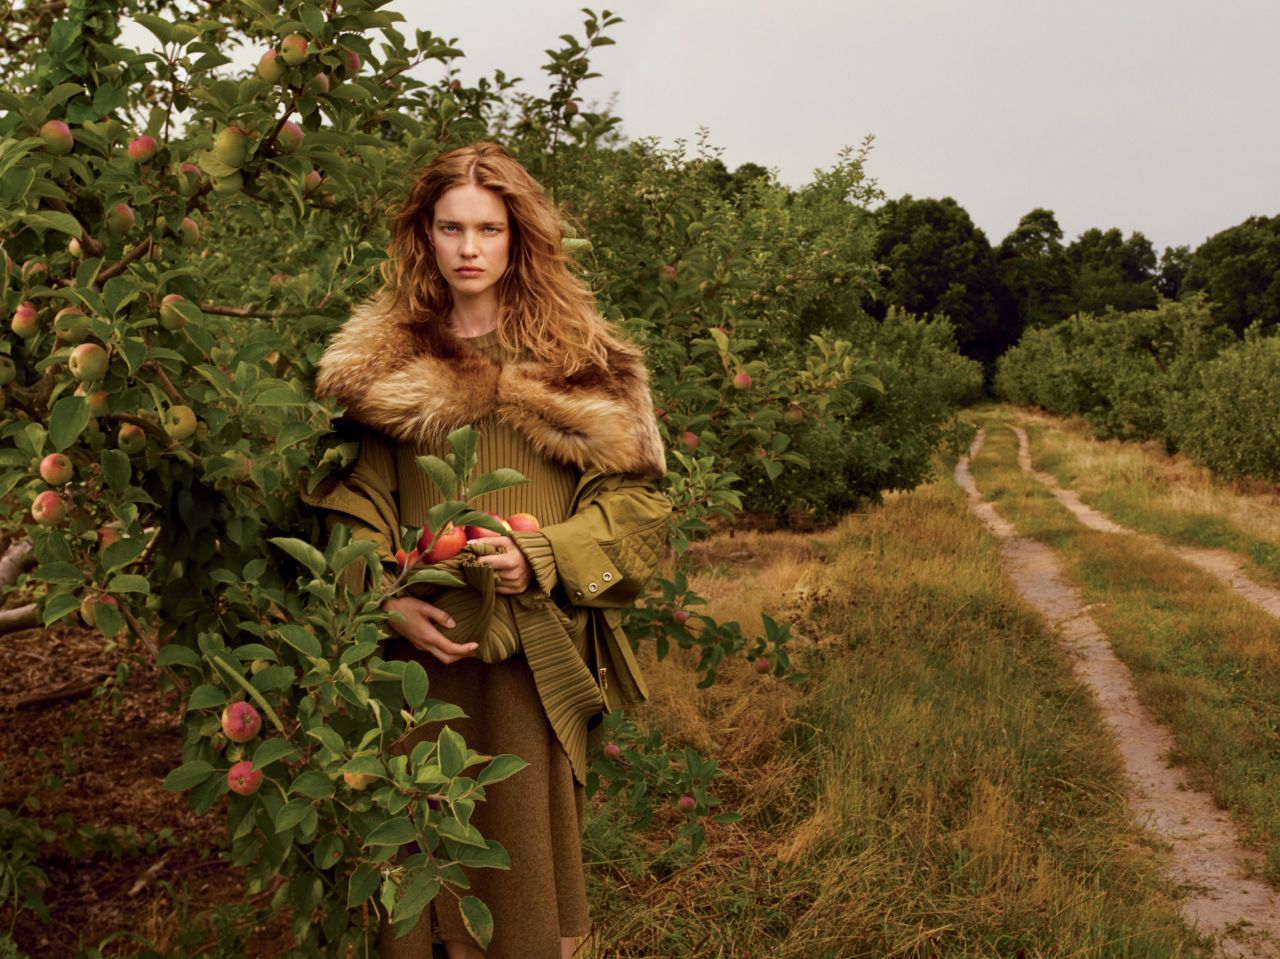 ... Photoshoot – 'The Fall Classic' for Vogue (USA) – October 2014